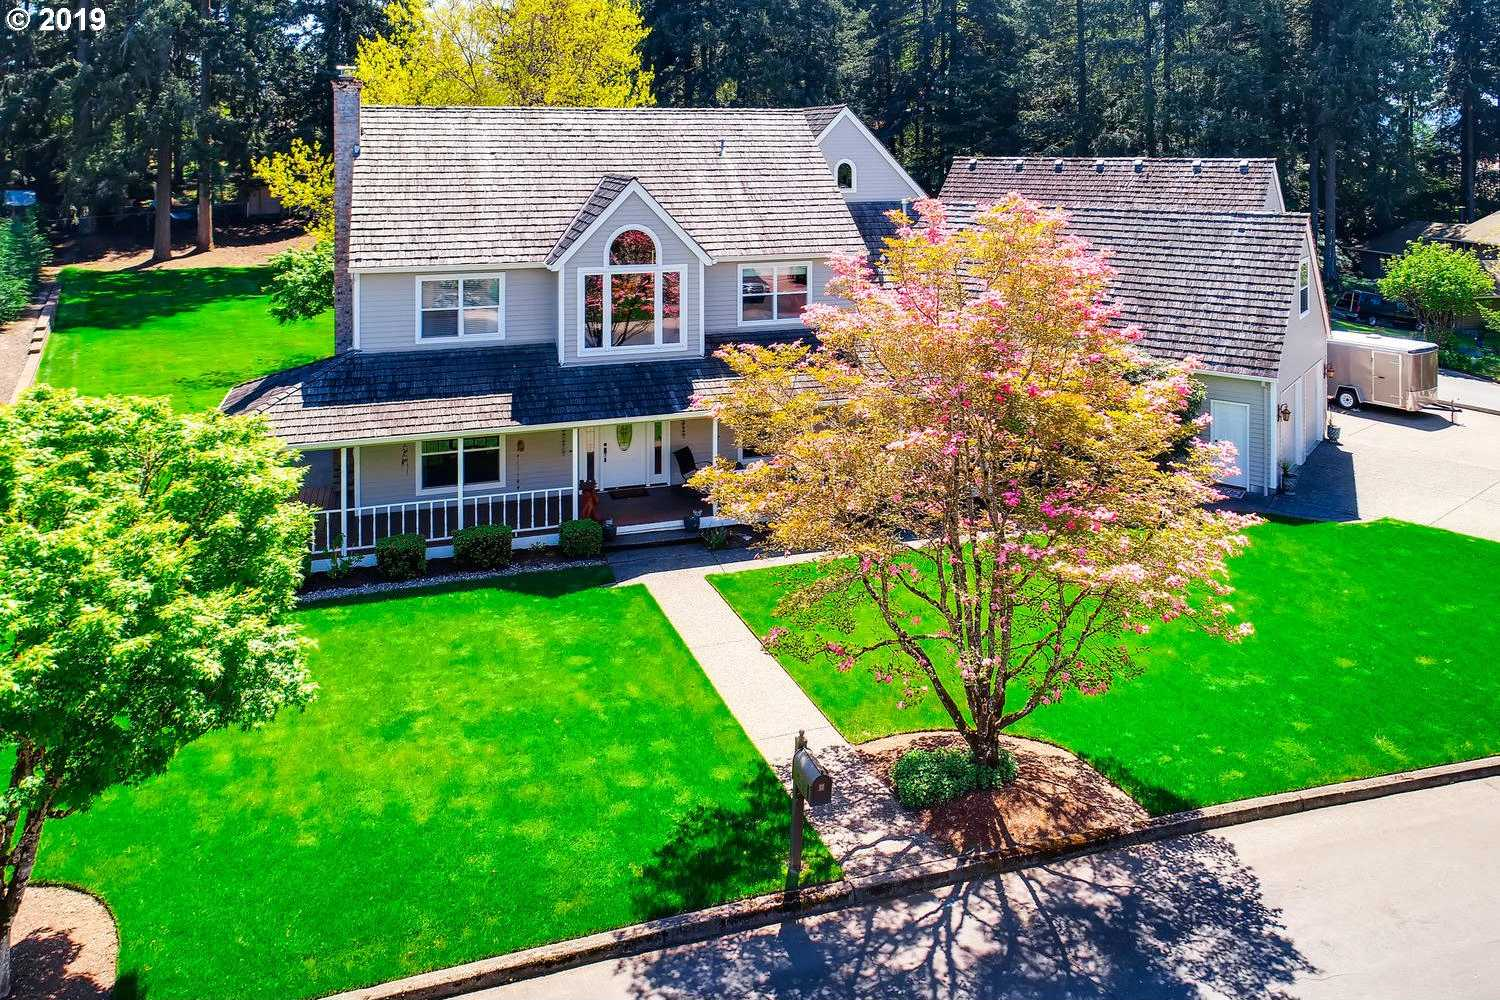 $949,000 - 4Br/4Ba -  for Sale in Bull Mountain, Tigard